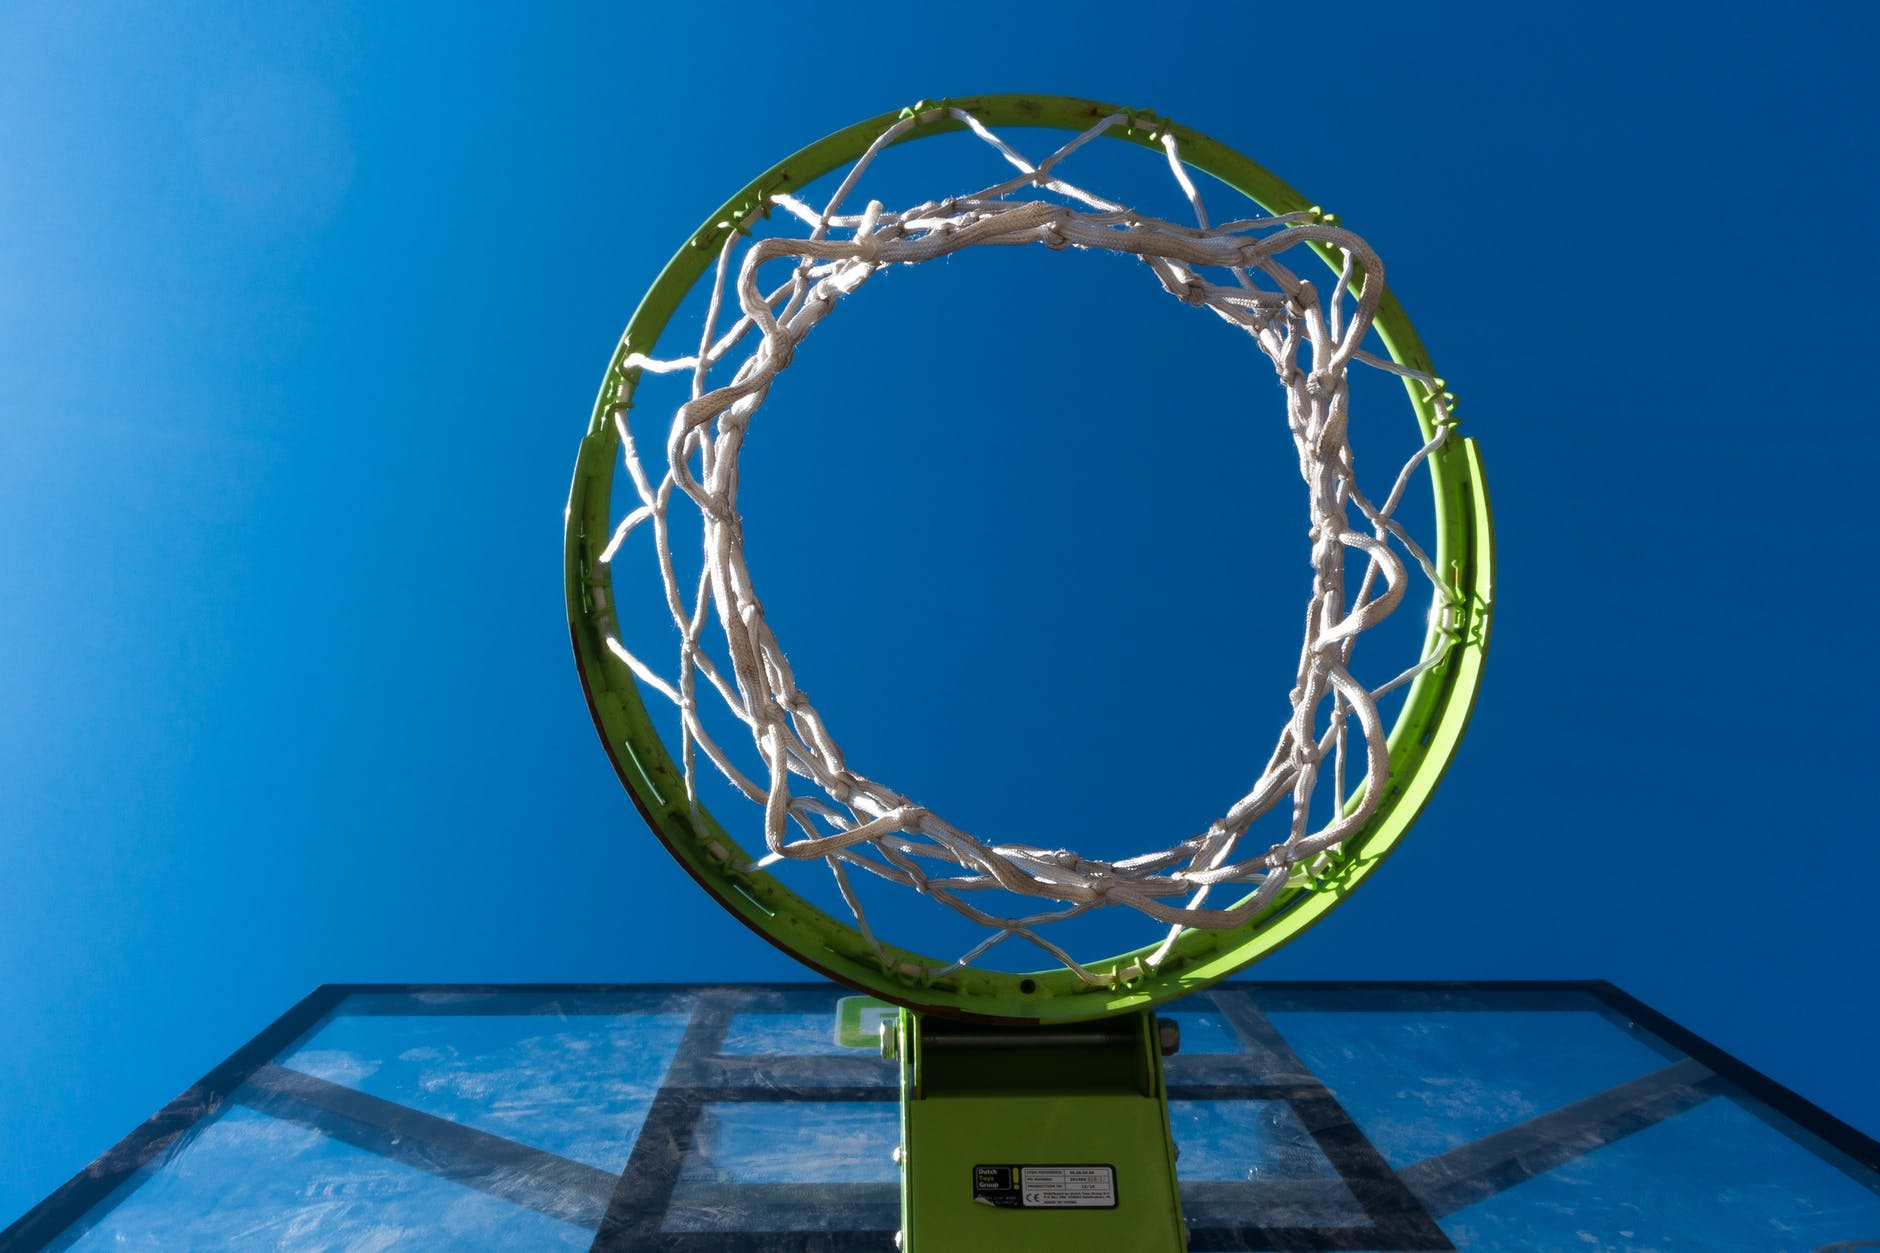 worm view photography of green and black basketall hoop